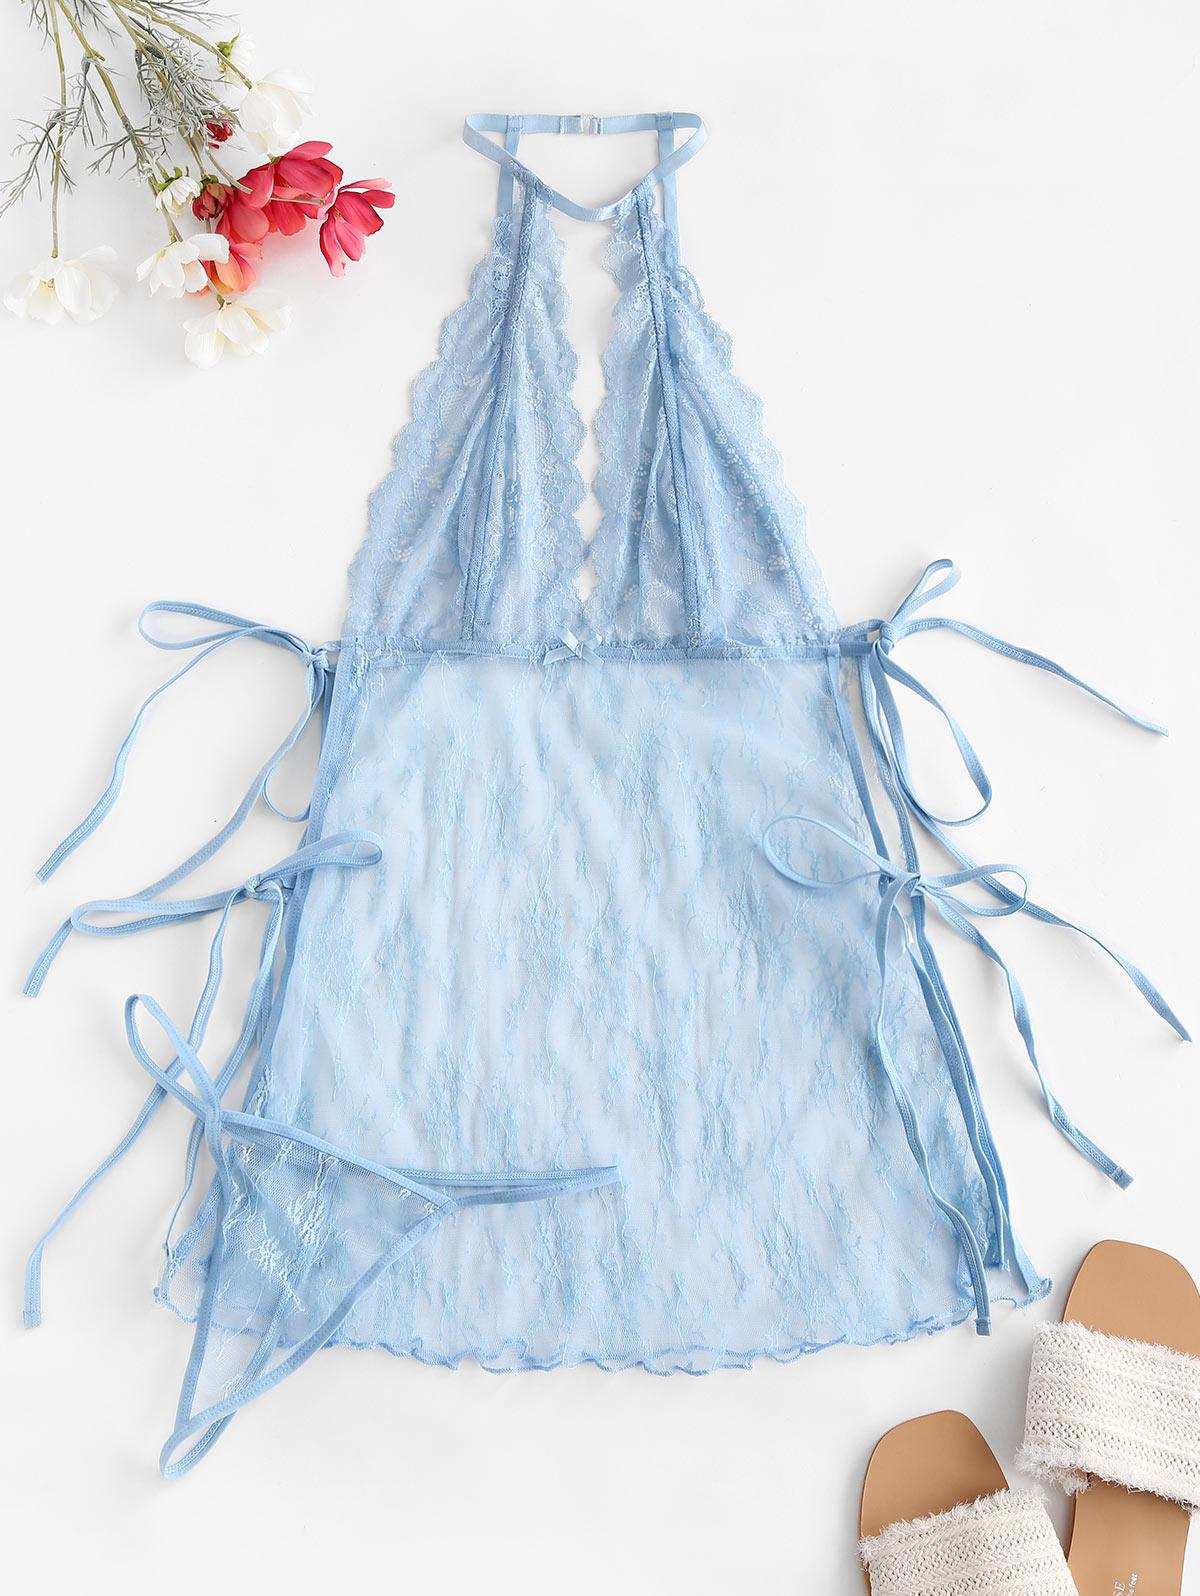 See Through Lace Side Lace Up Babydolls